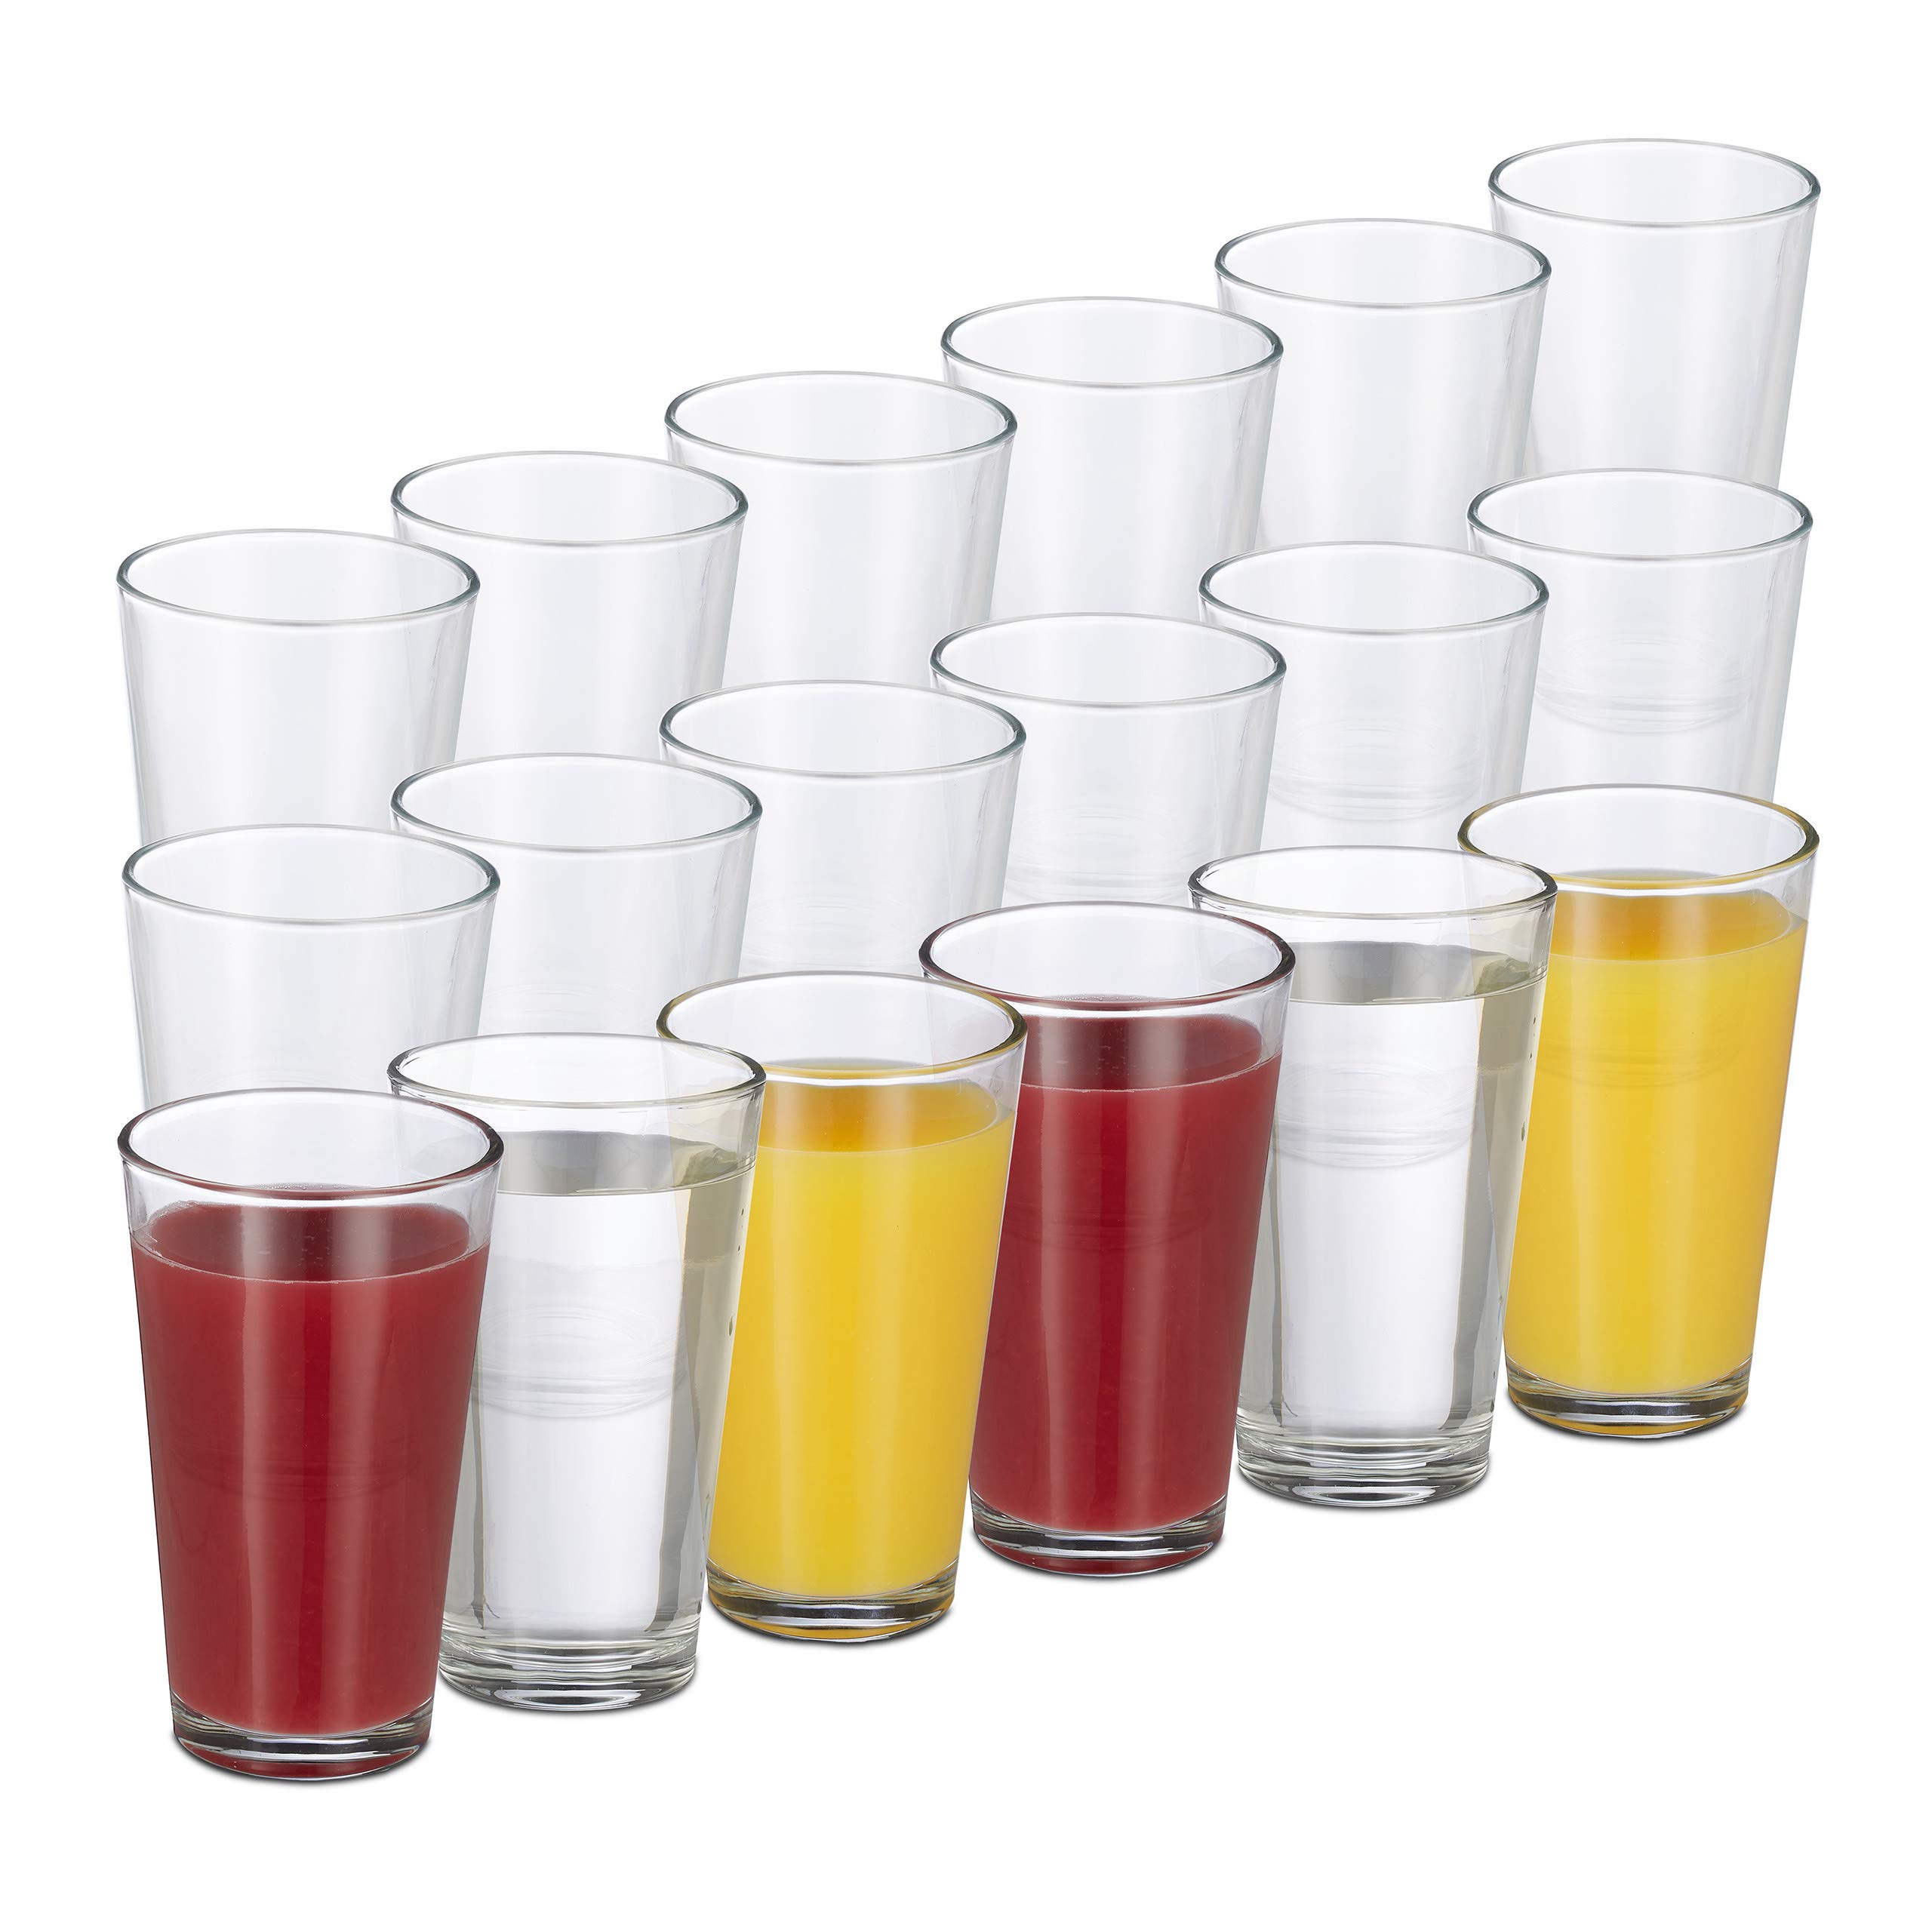 Relaxdays 10023413 Set of 18 Drinking Glasses Thick-Walled Water Glasses Simple Design Dishwasher Safe 500 ml Transparent Glass by Relaxdays